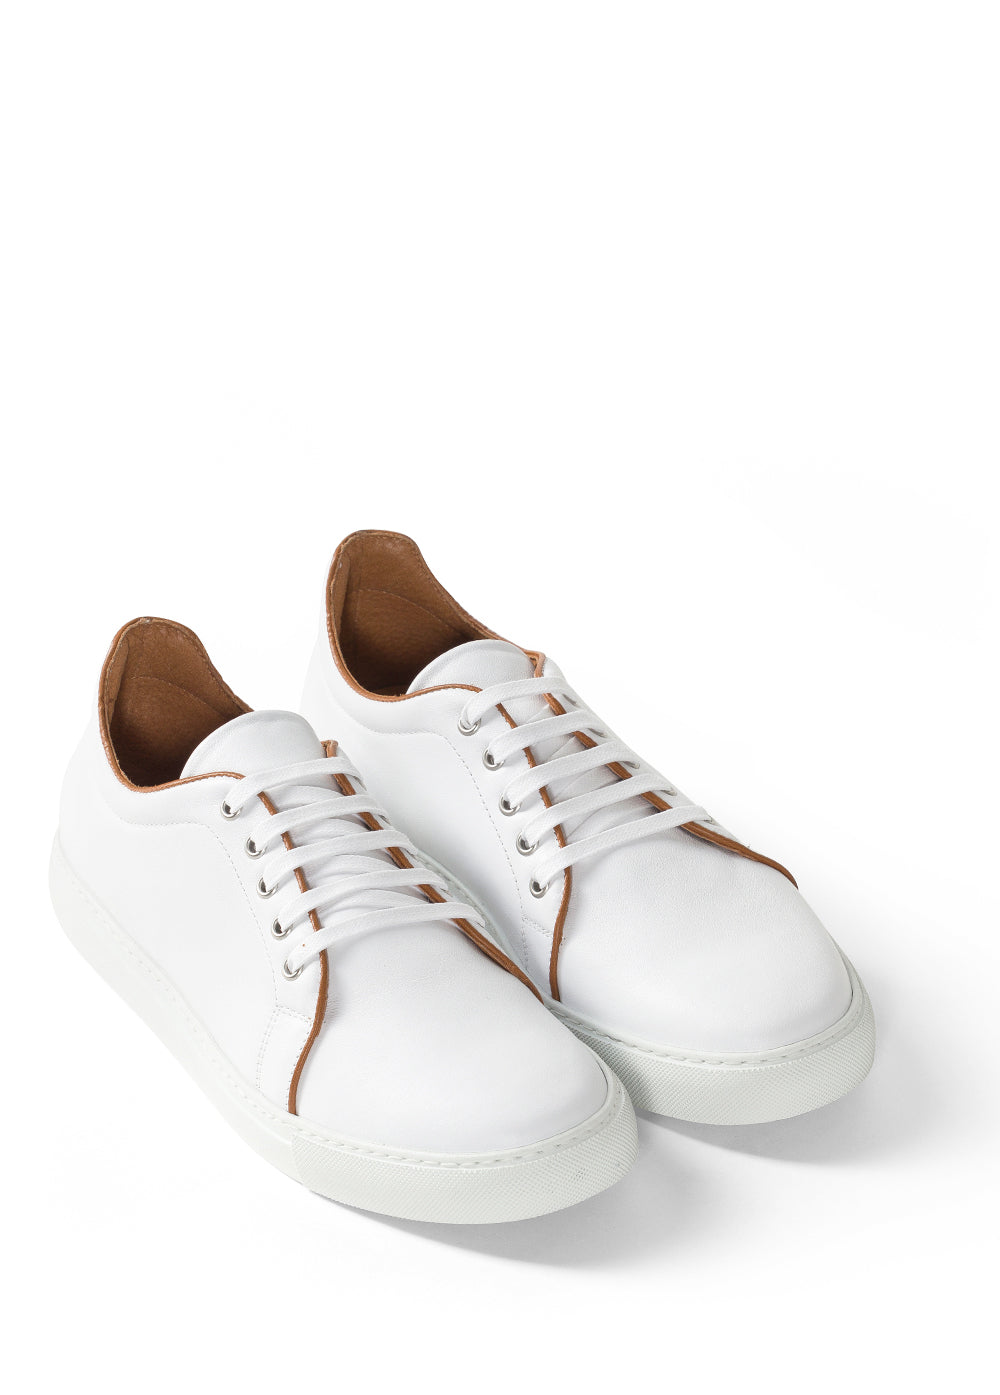 White & Tan Piping Low-Top Sneakers